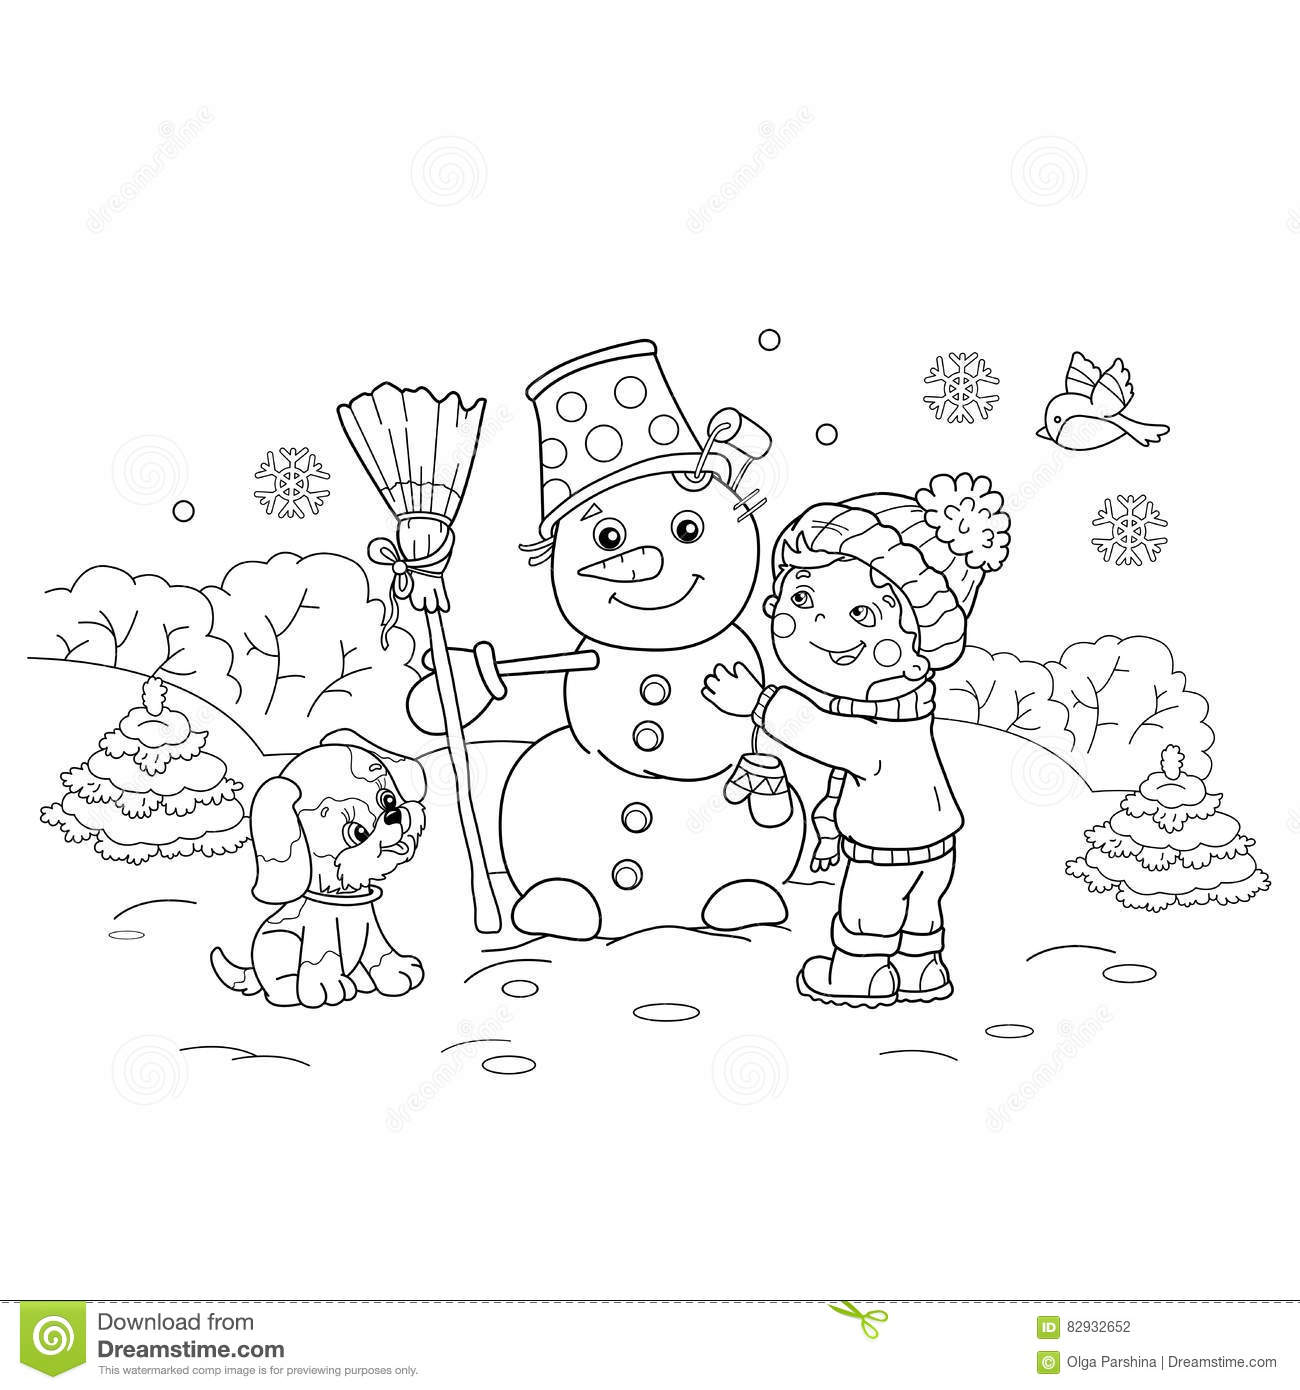 Coloring Page Outline Of Cartoon Boy Making Snowman With Dog. Stock ...